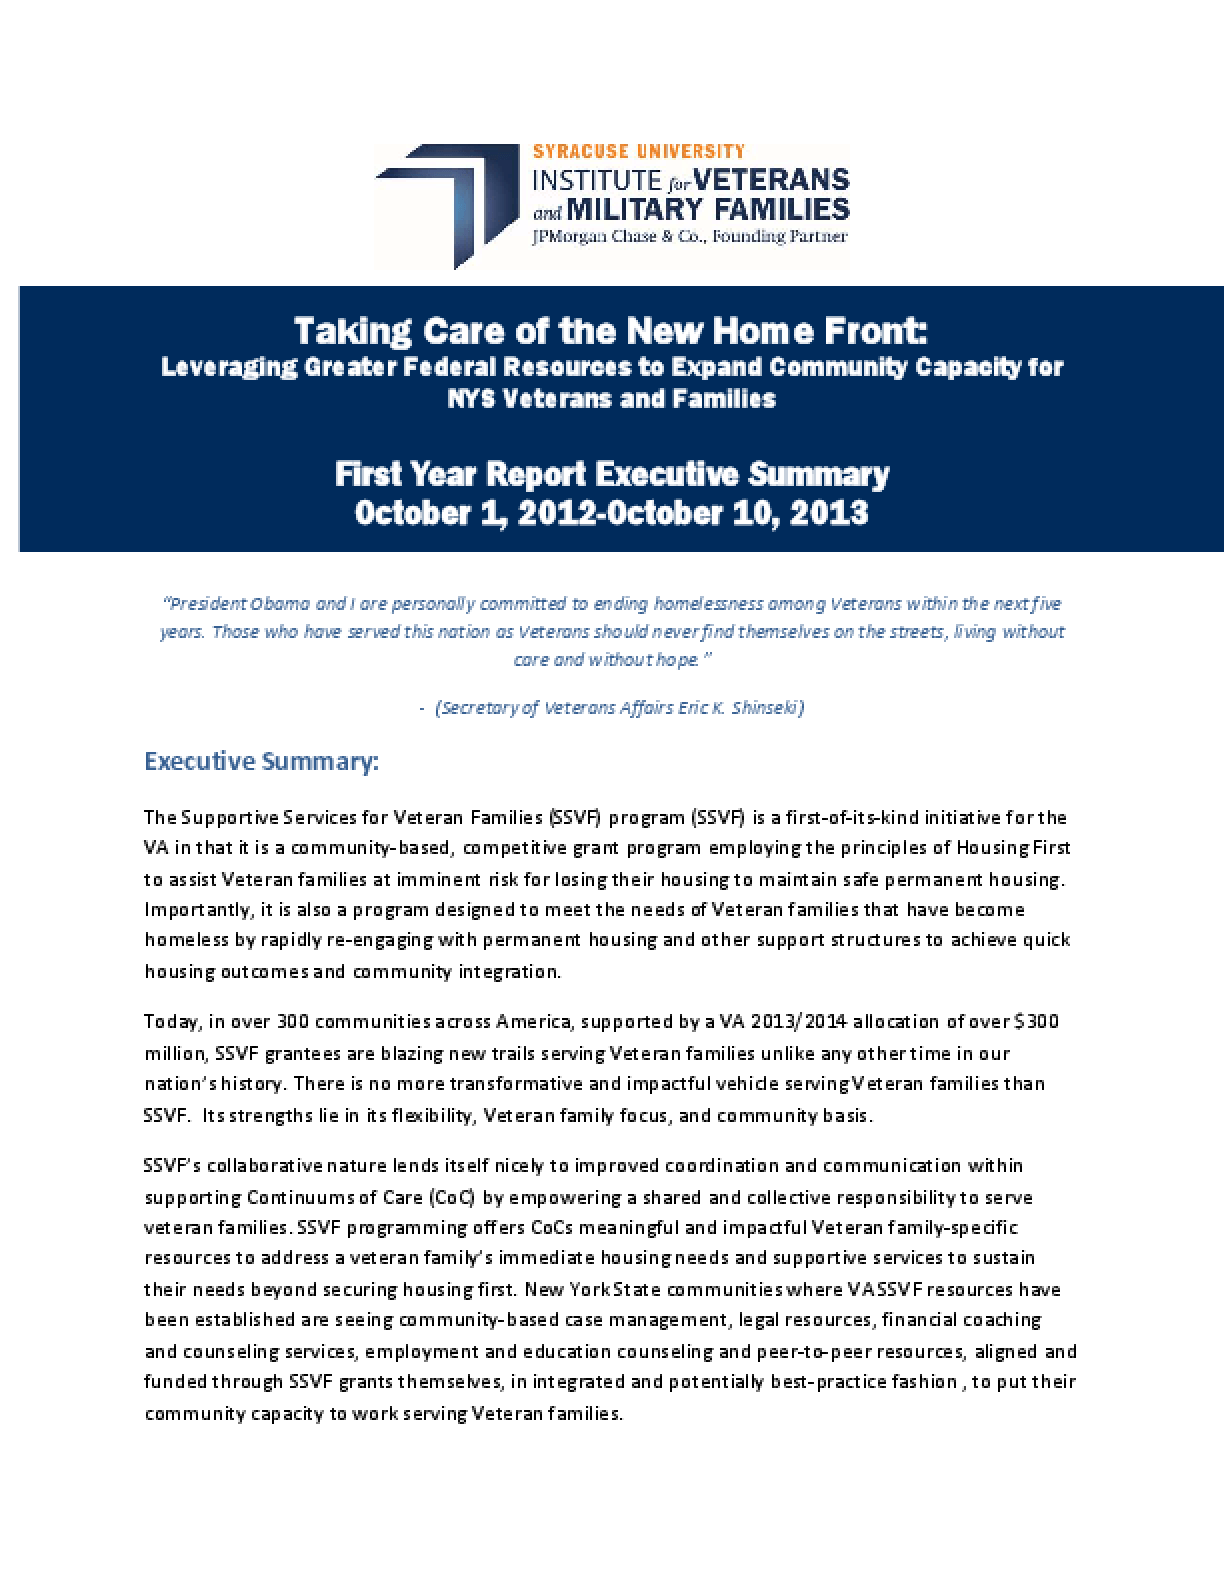 Taking Care of the New Home Front: Leveraging Greater Federal Resources to Expand Community Capacity for NYS Veterans and Families